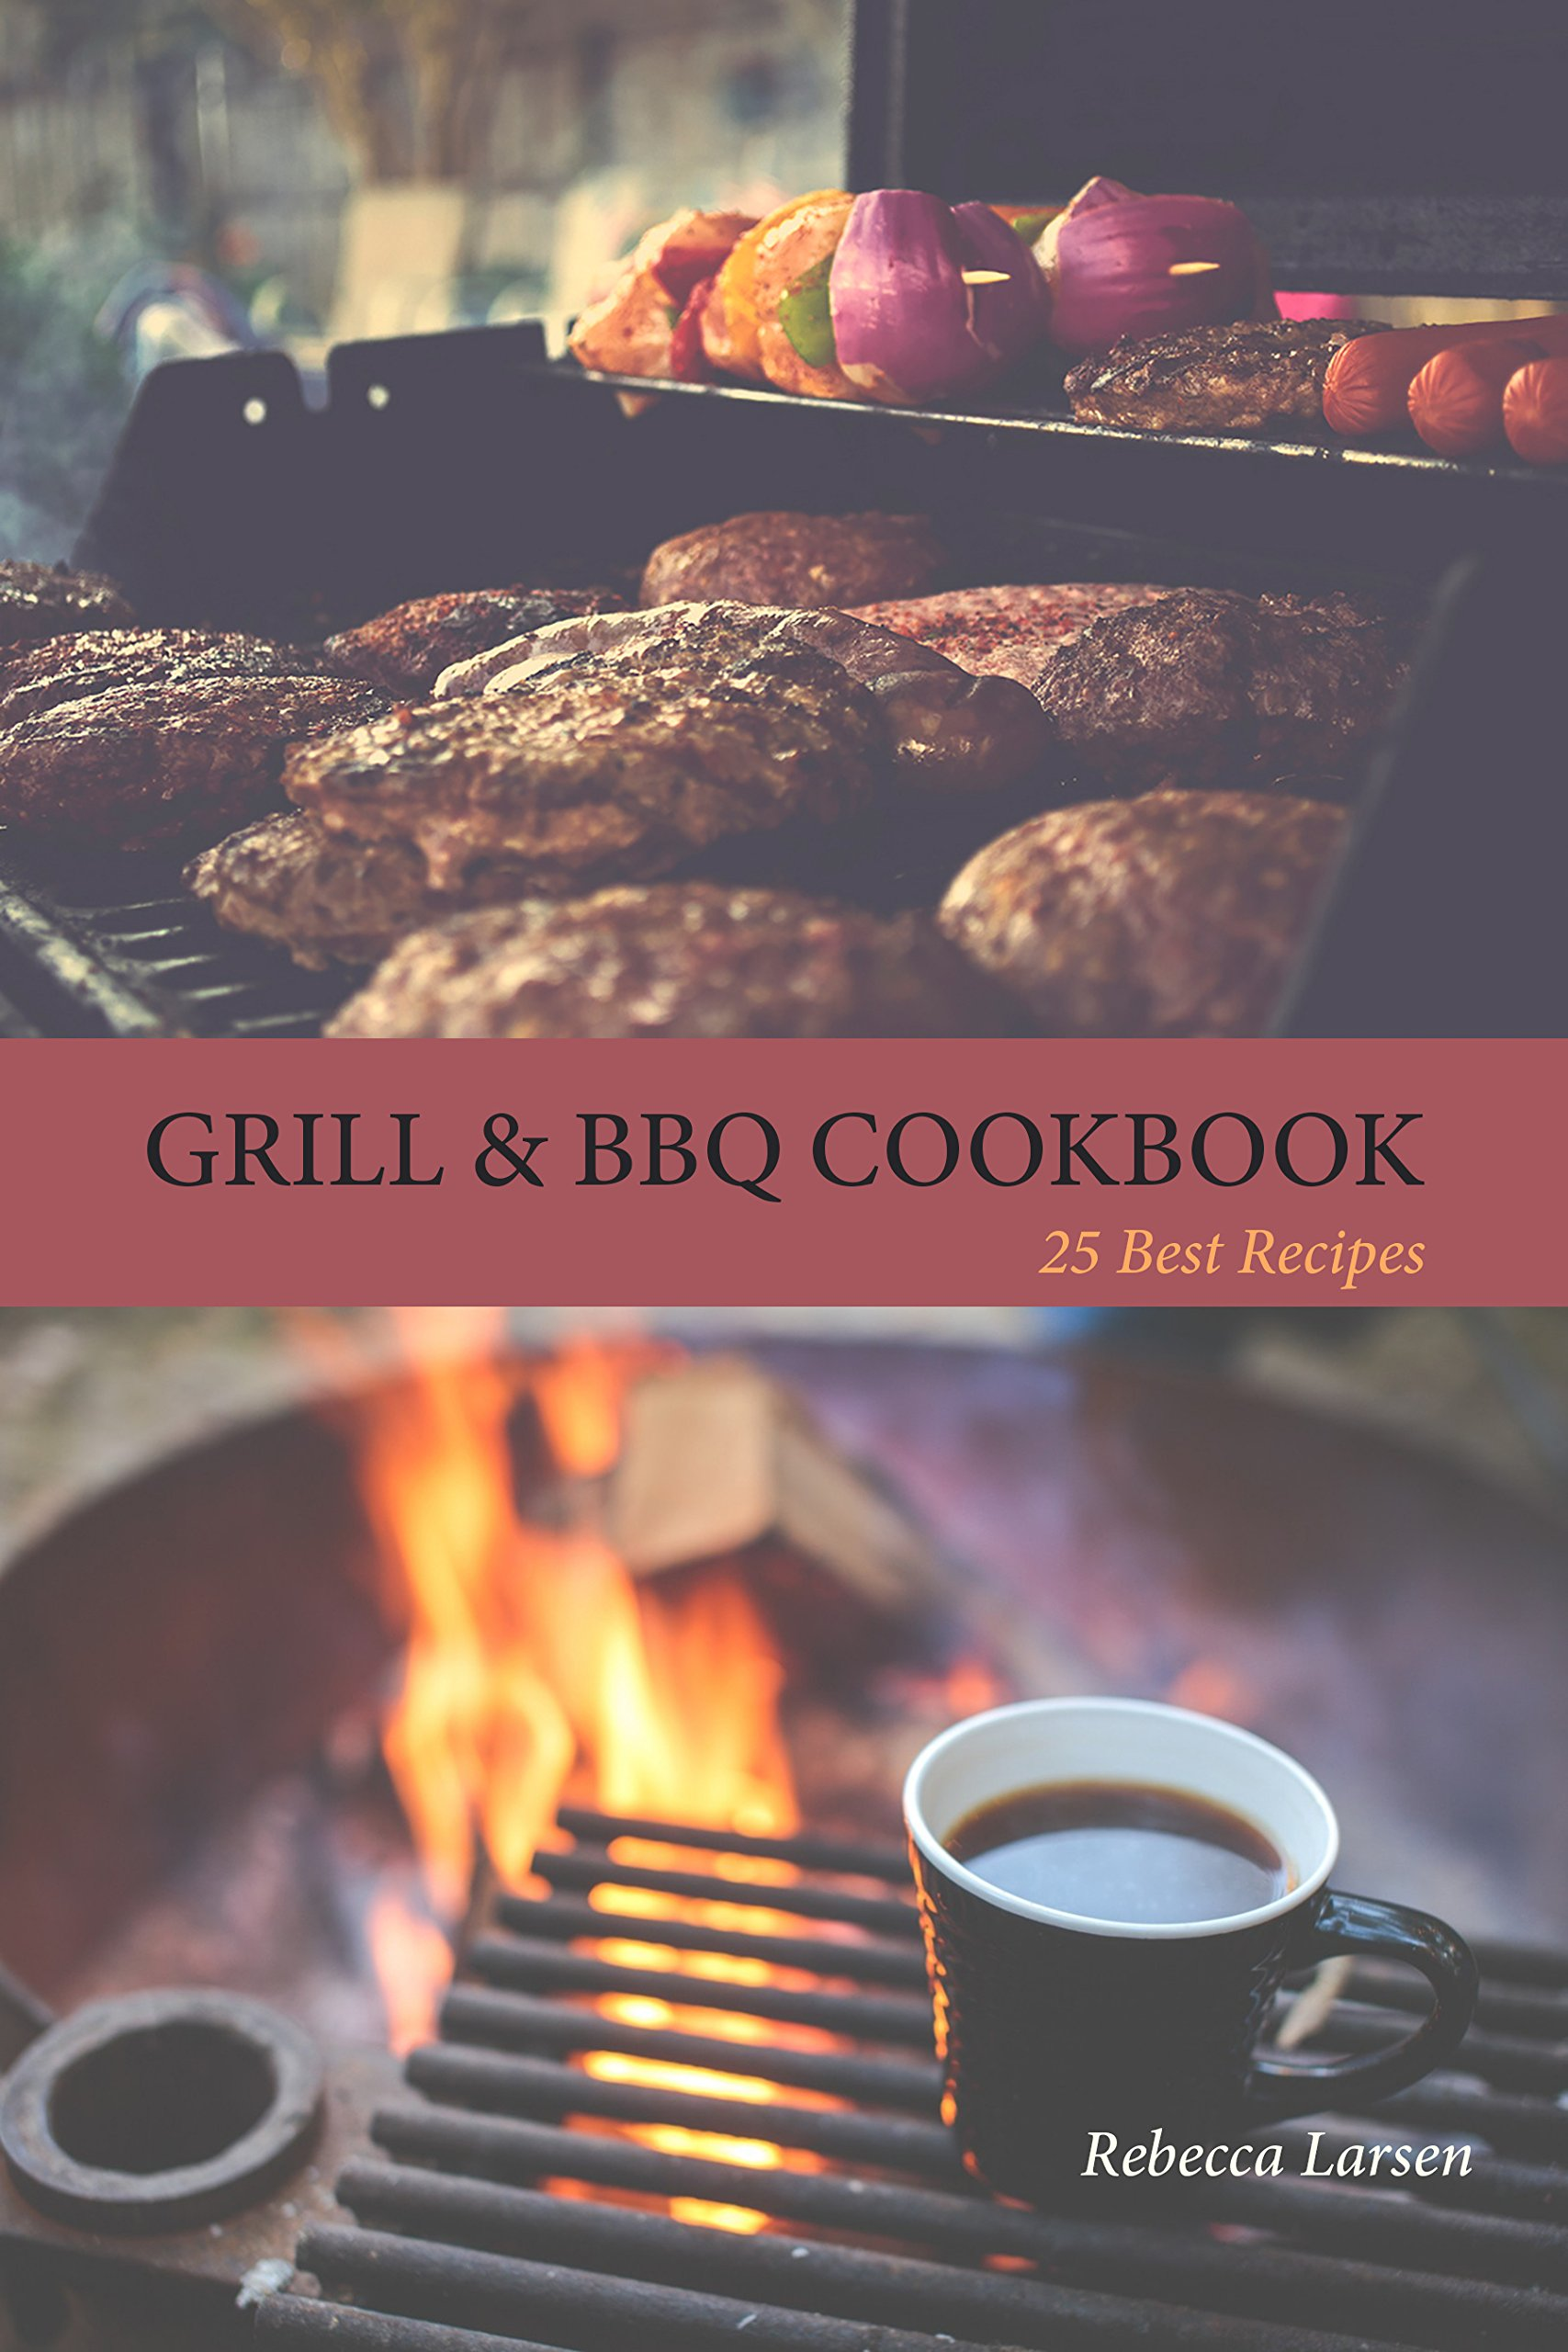 Download GRILL & BBQ COOKBOOK 25 BEST RECIPES (English Edition) 